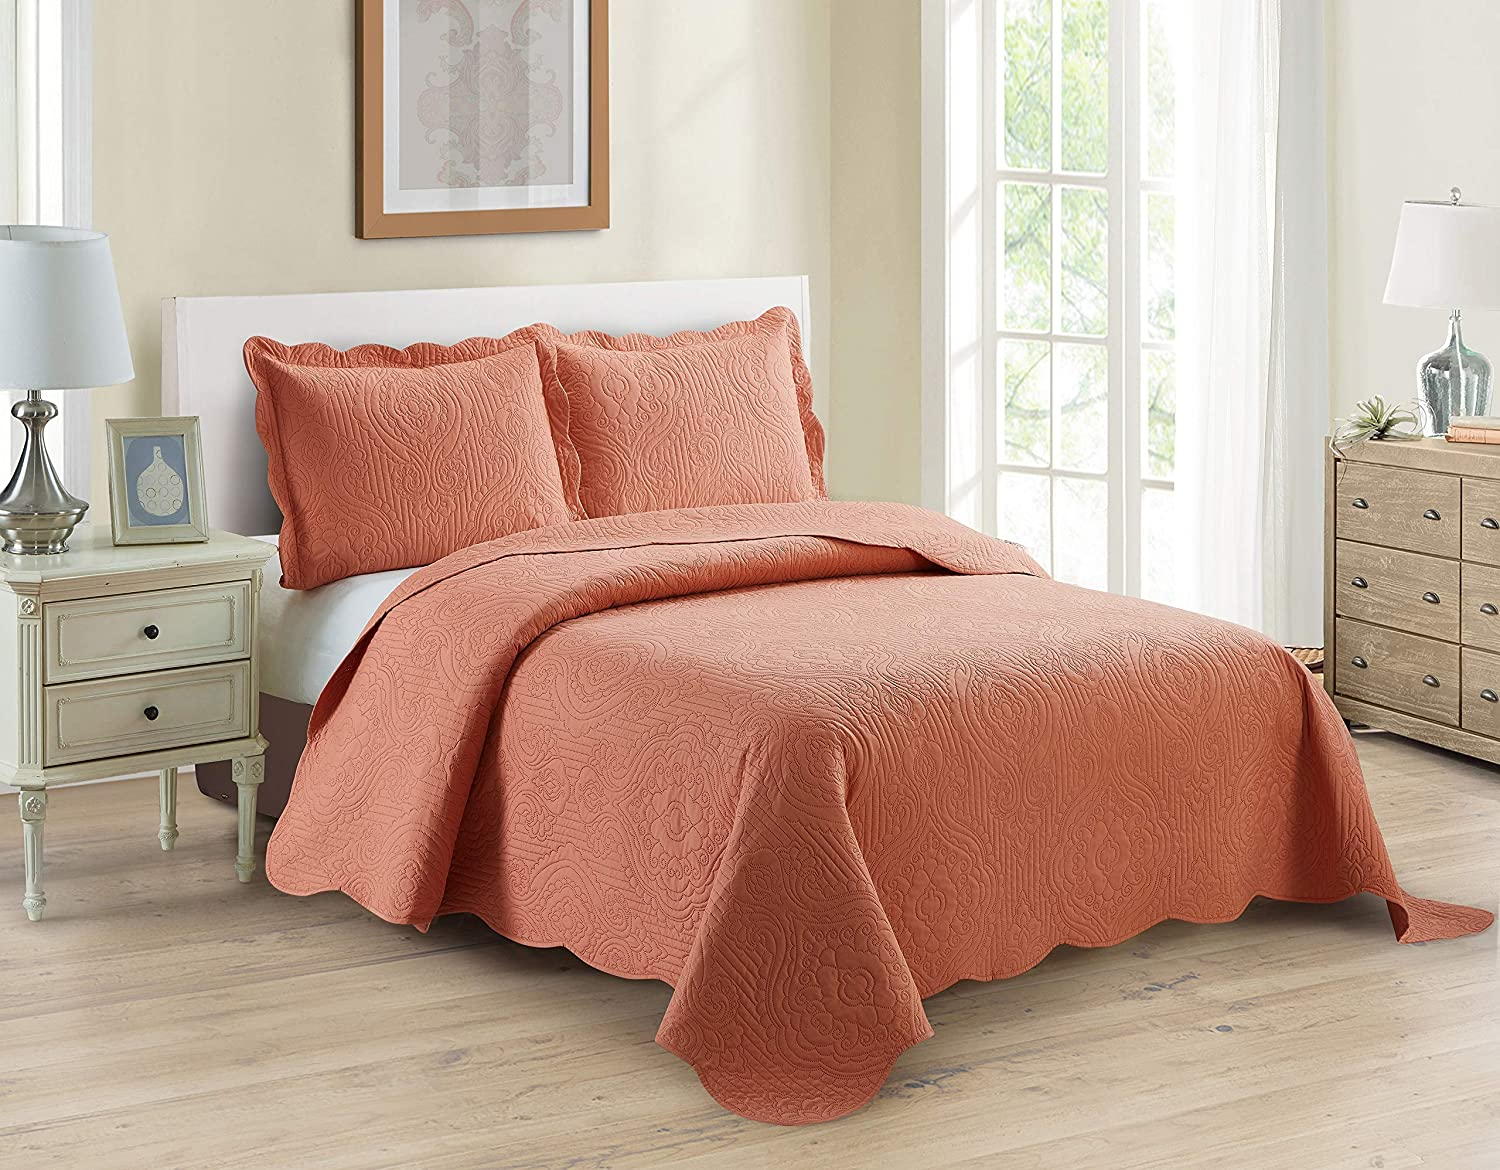 Home Collection 3pc King/Cal King Over Size Luxury Embossed Bedspread Set Light Weight Solid Coral New